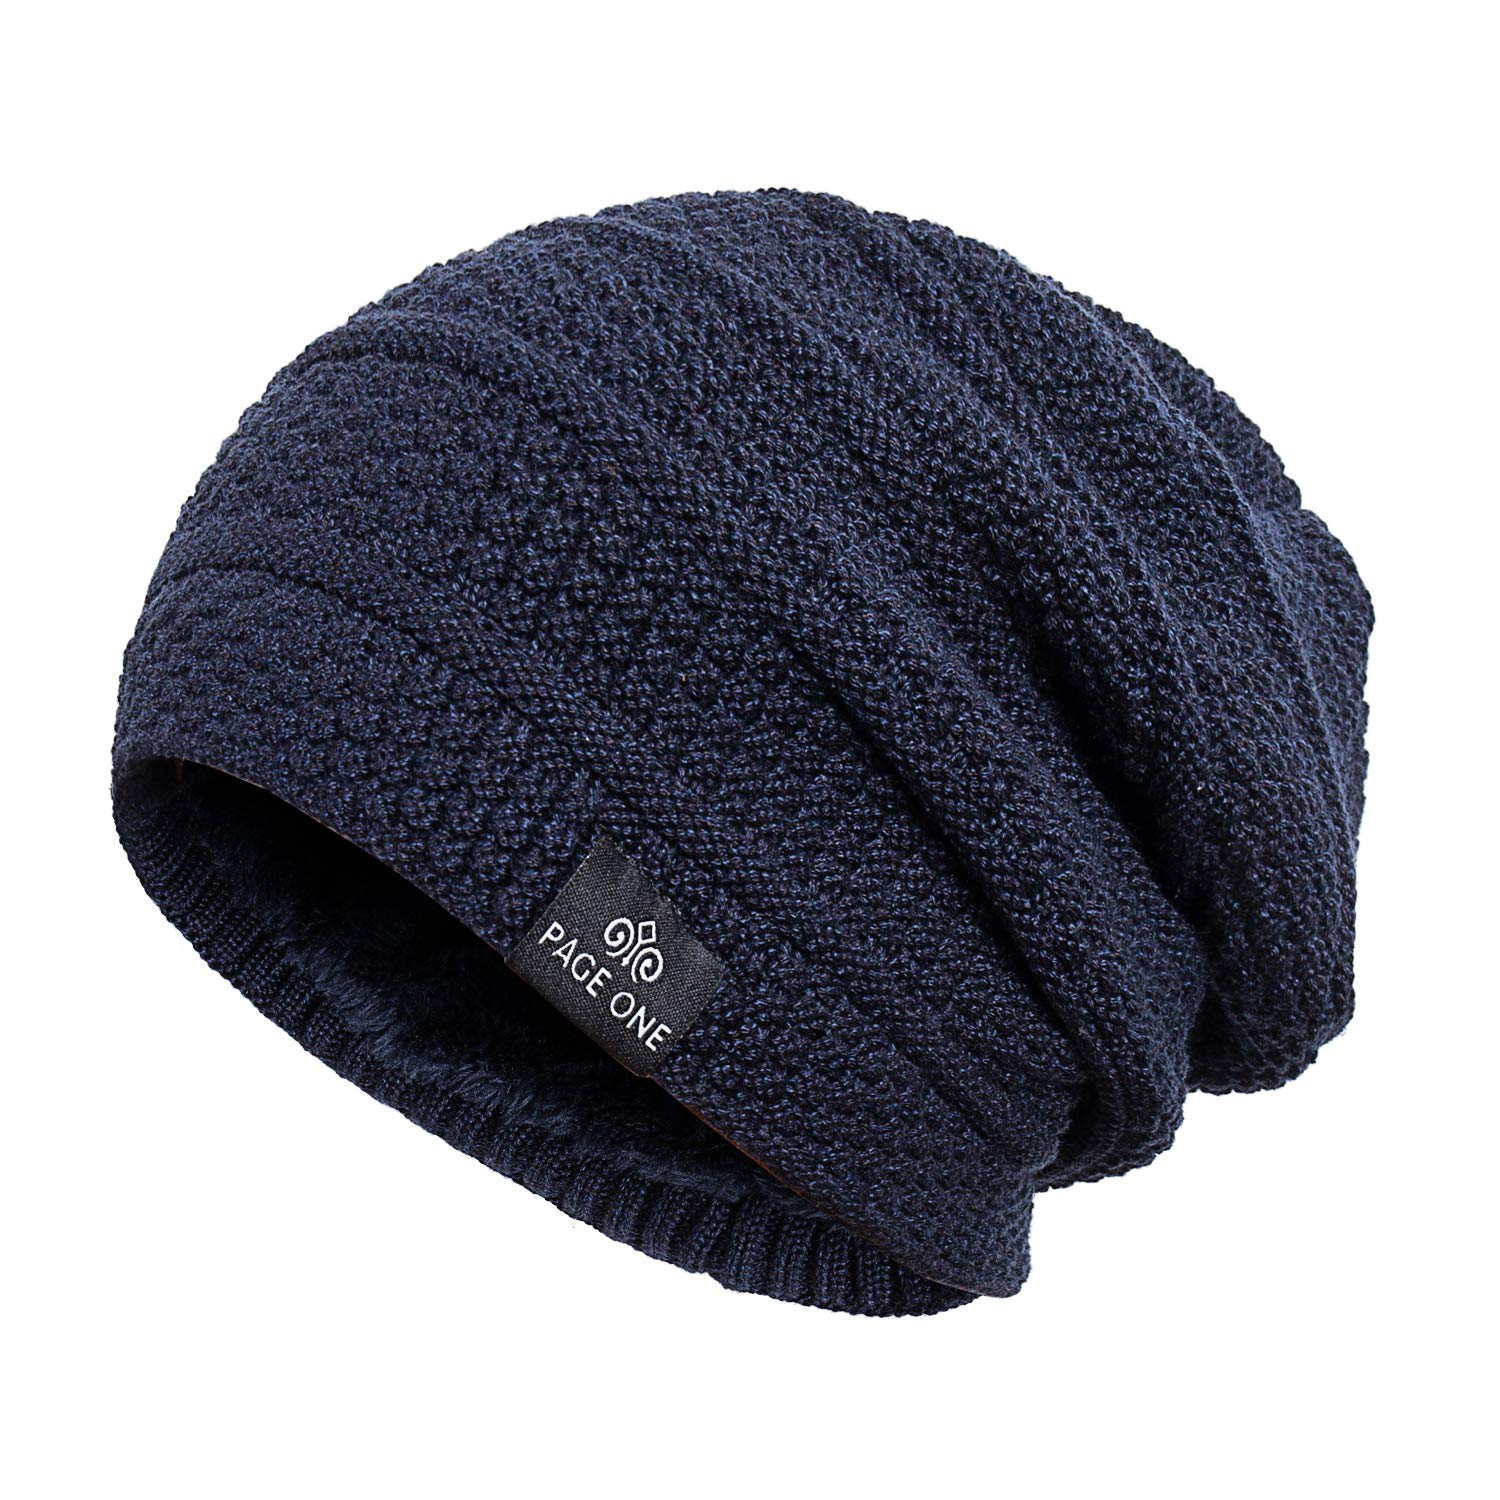 b826571296b PAGE ONE Mens Winter Warm Knit Hat Soft Fleece Lined Stretch Slouchy Skully  Striped Beanie Men Women(Navy) at Amazon Men s Clothing store